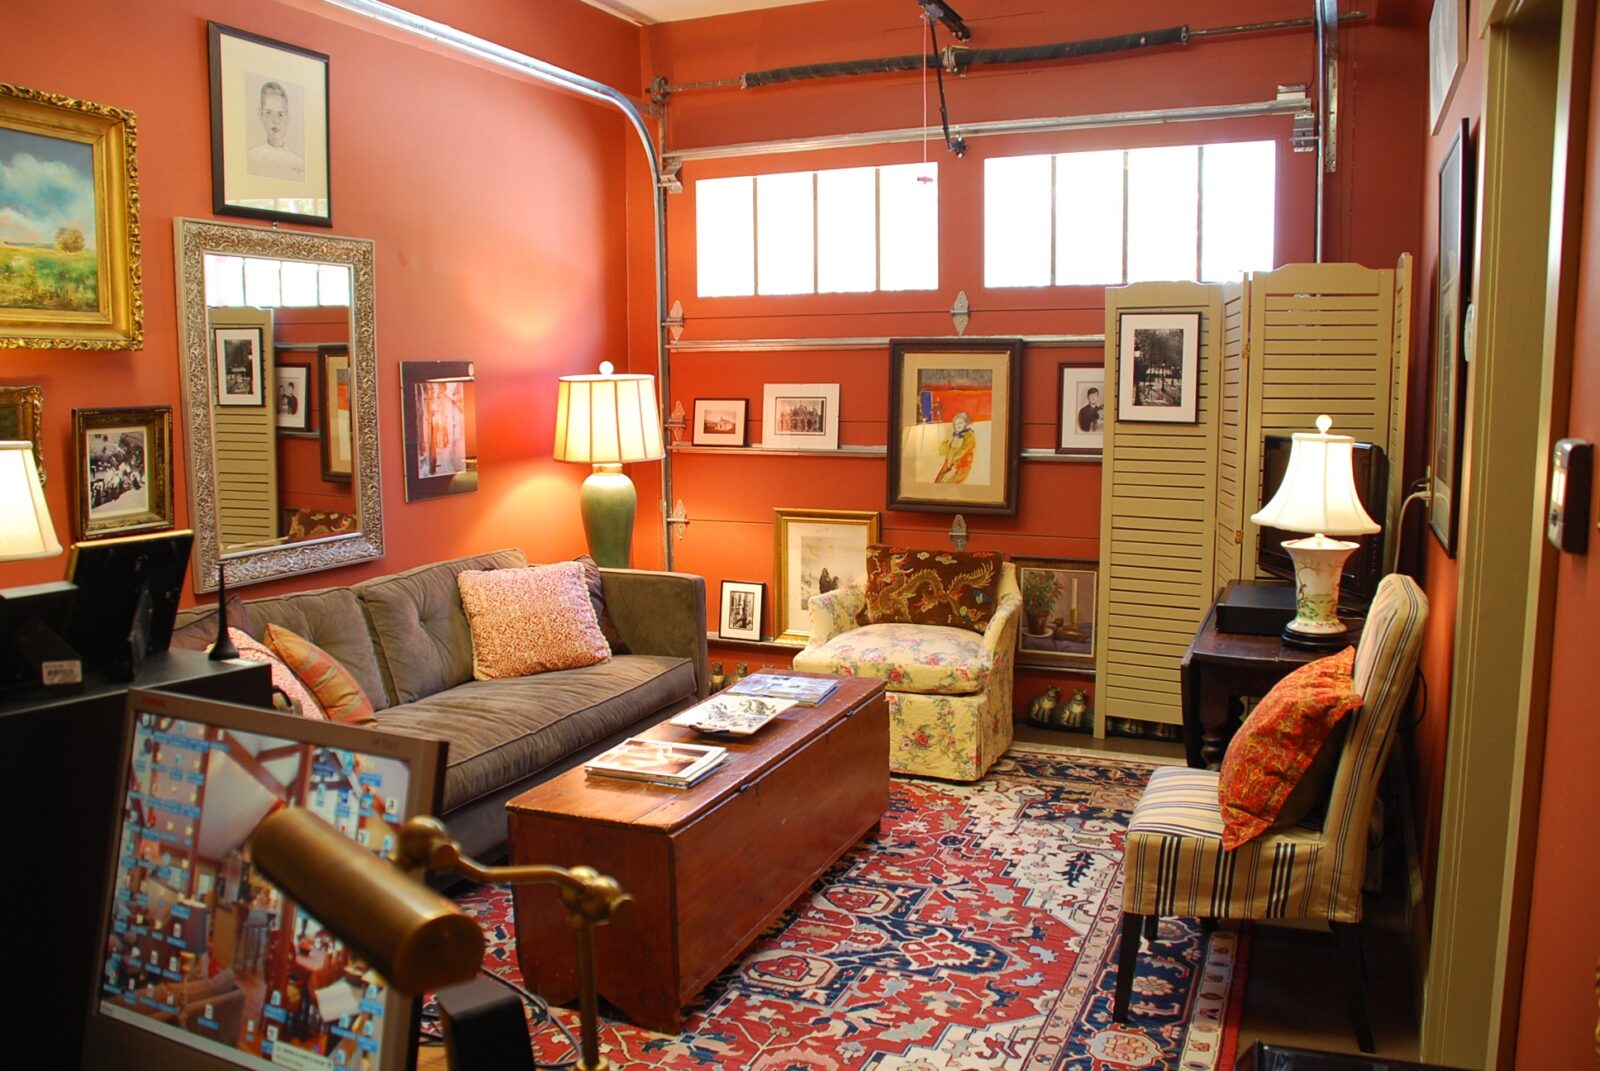 My carriage house first floor the man cave gets a makeover - Man cave ideas for small spaces collection ...